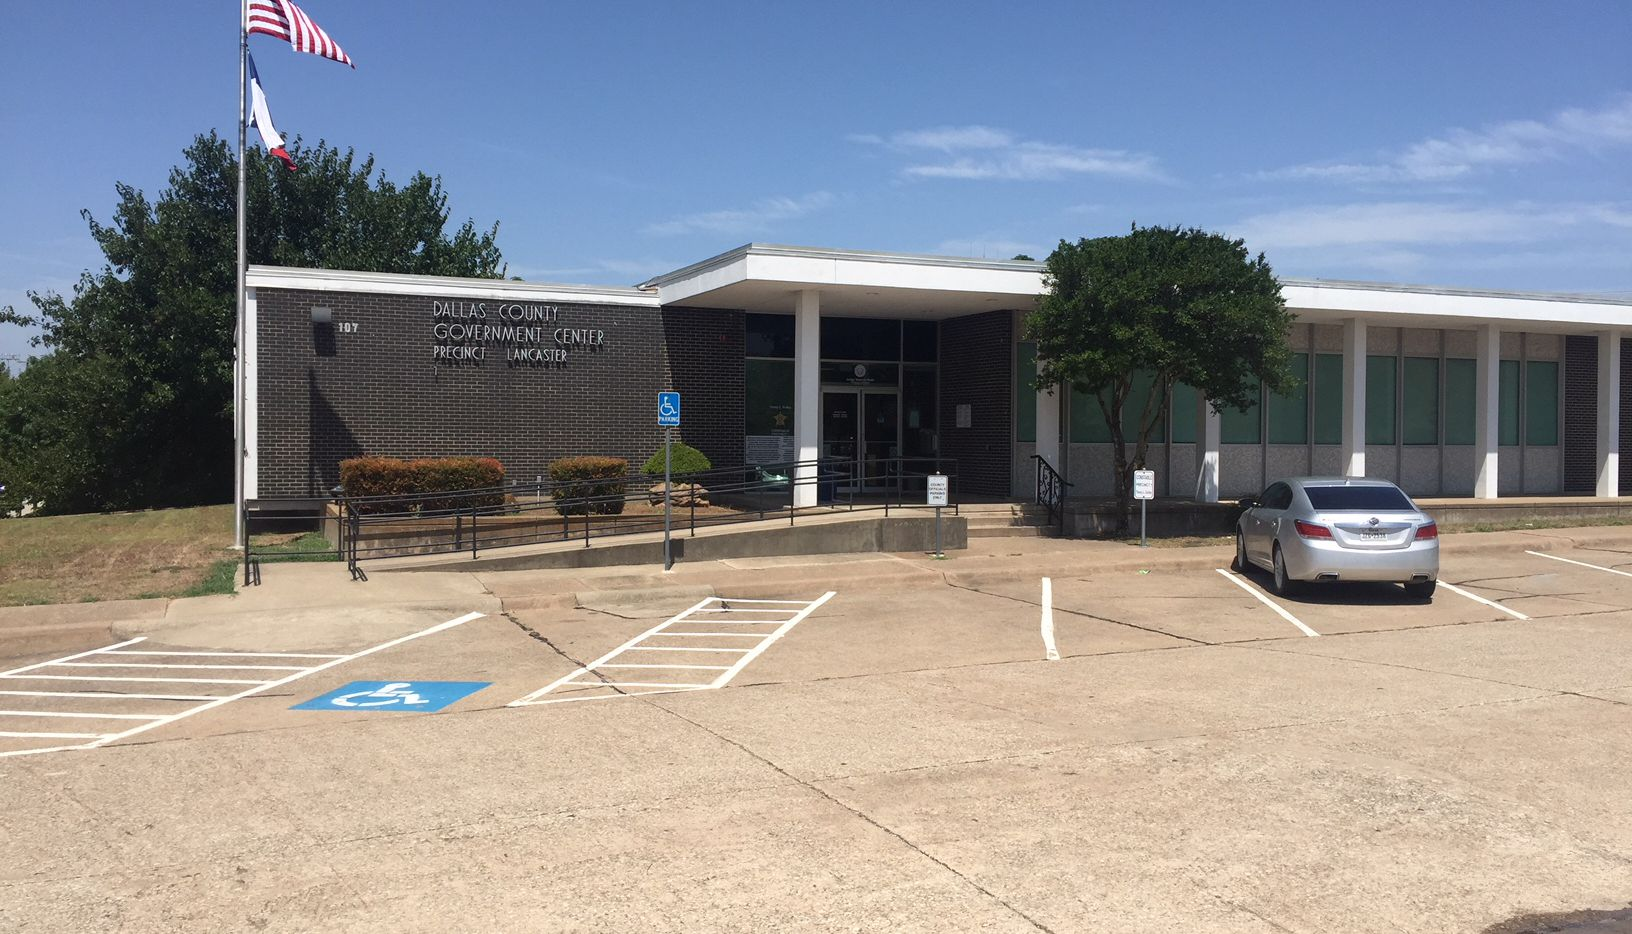 The Dallas County properties for sale include an office building in Lancaster.